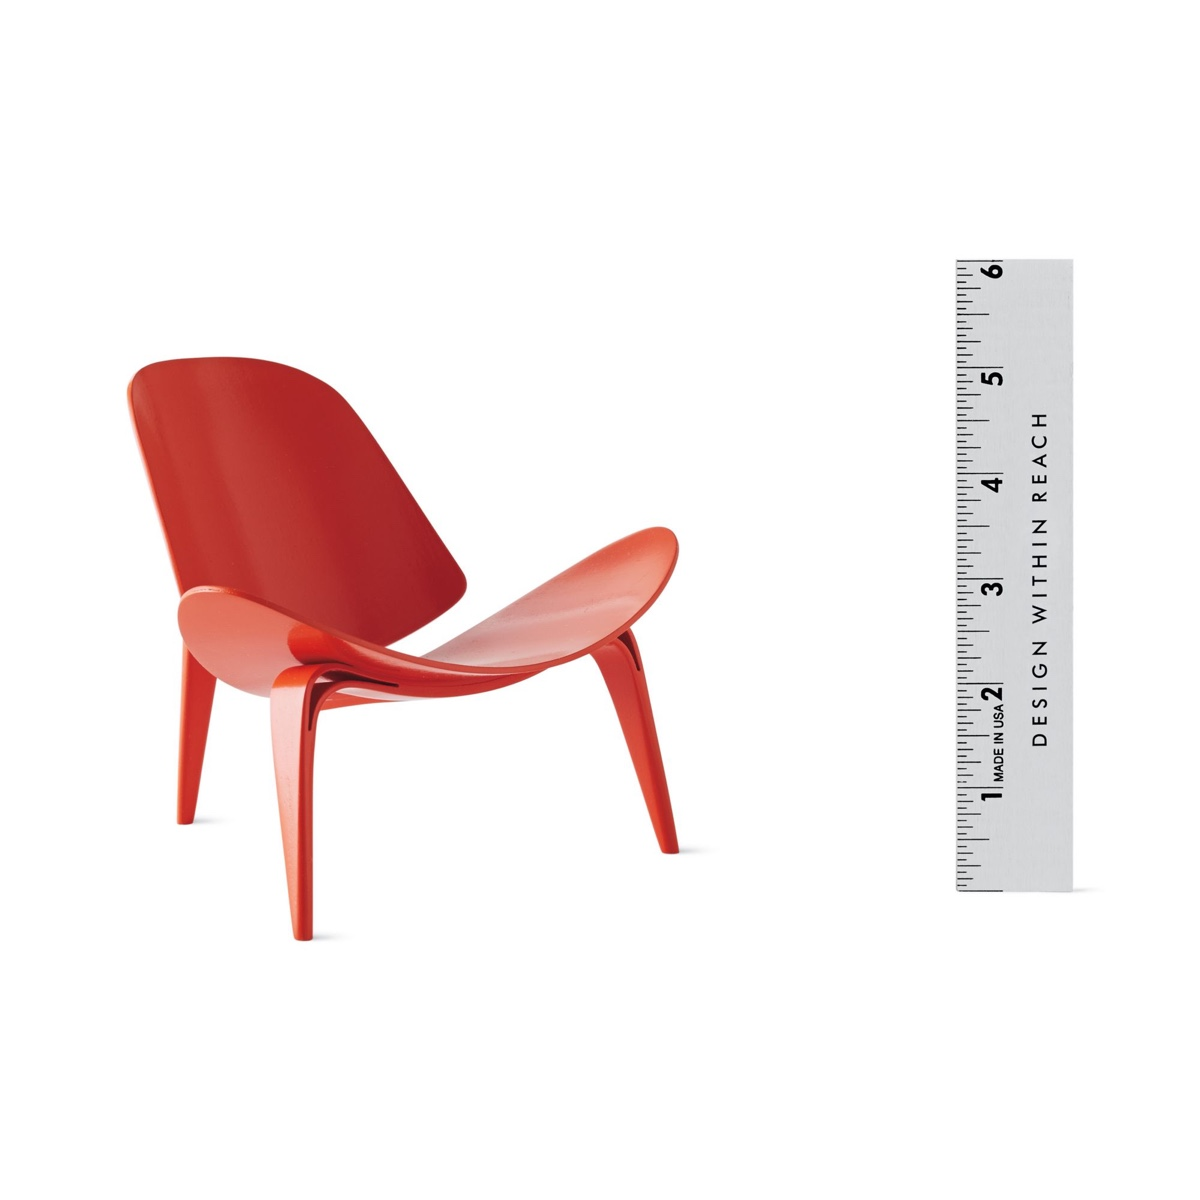 Vitra miniatures: the Shell chair, designed by Hans J. Wegner and produced byVitra Design Museum. Image© 2016 Design Within Reach.